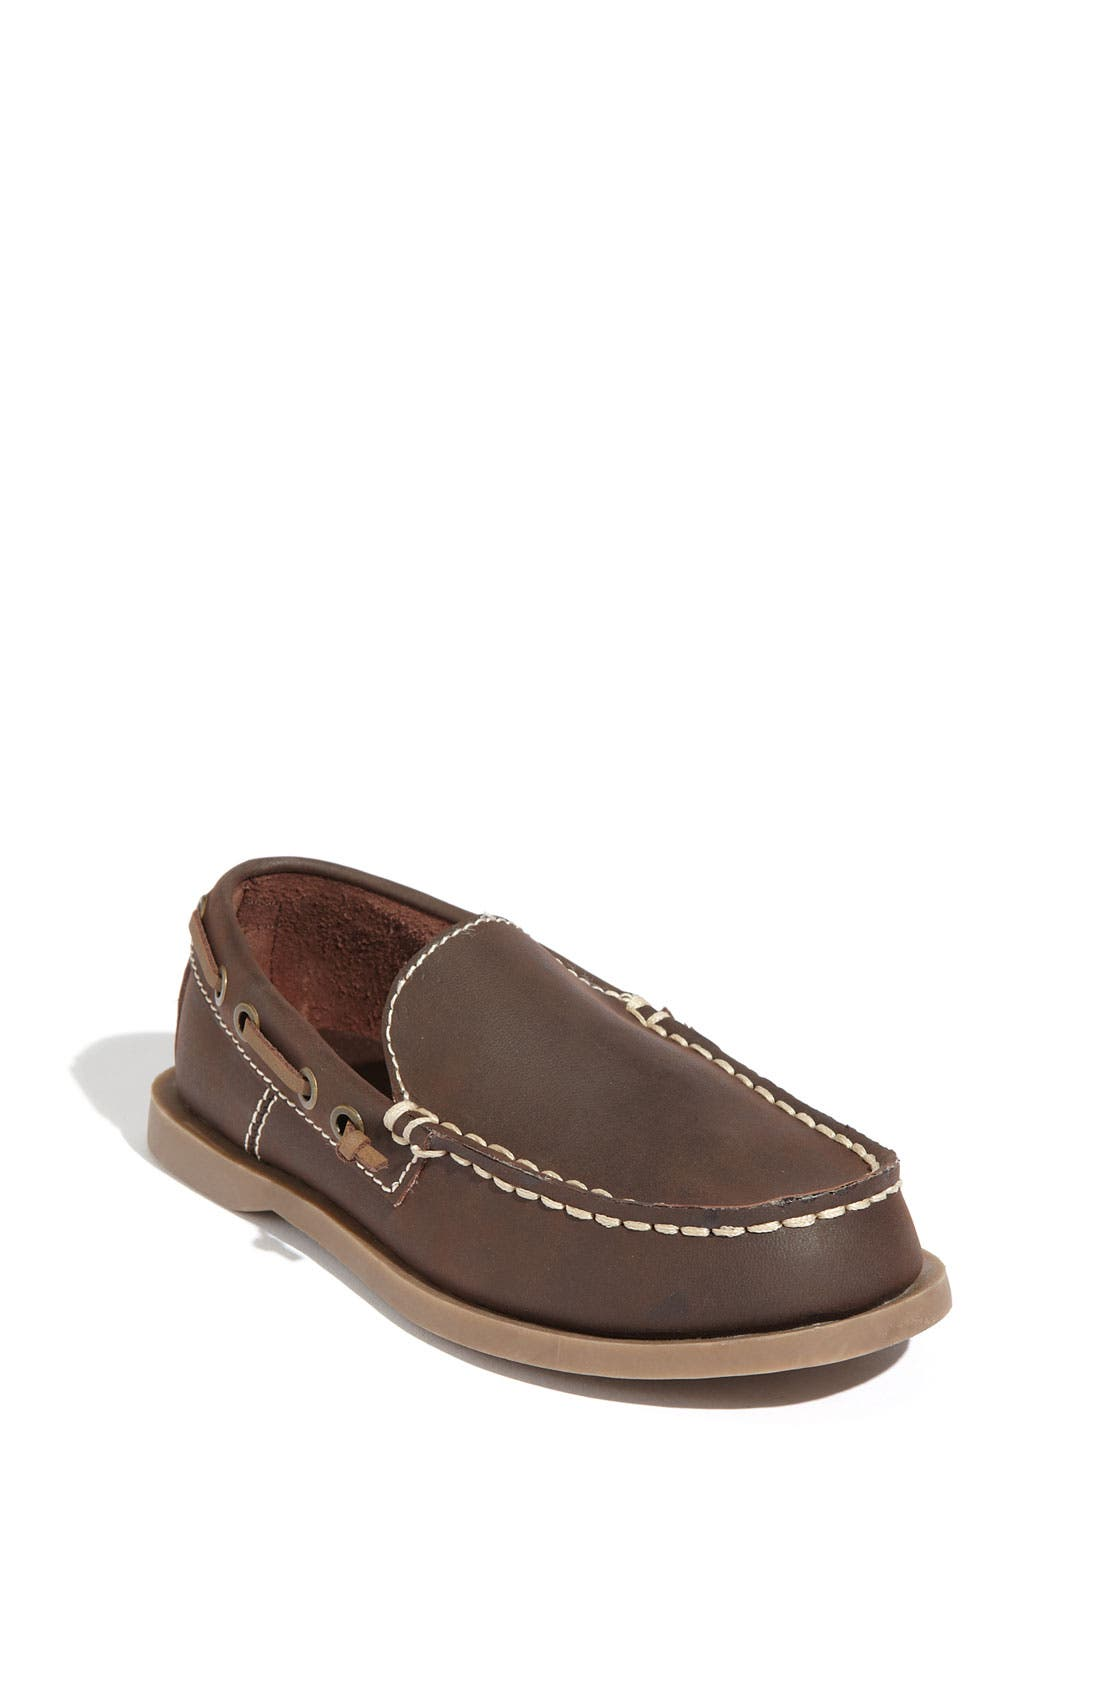 Main Image - Kenneth Cole Reaction 'See Saw 2' Loafer (Toddler, Little Kid & Big Kid)